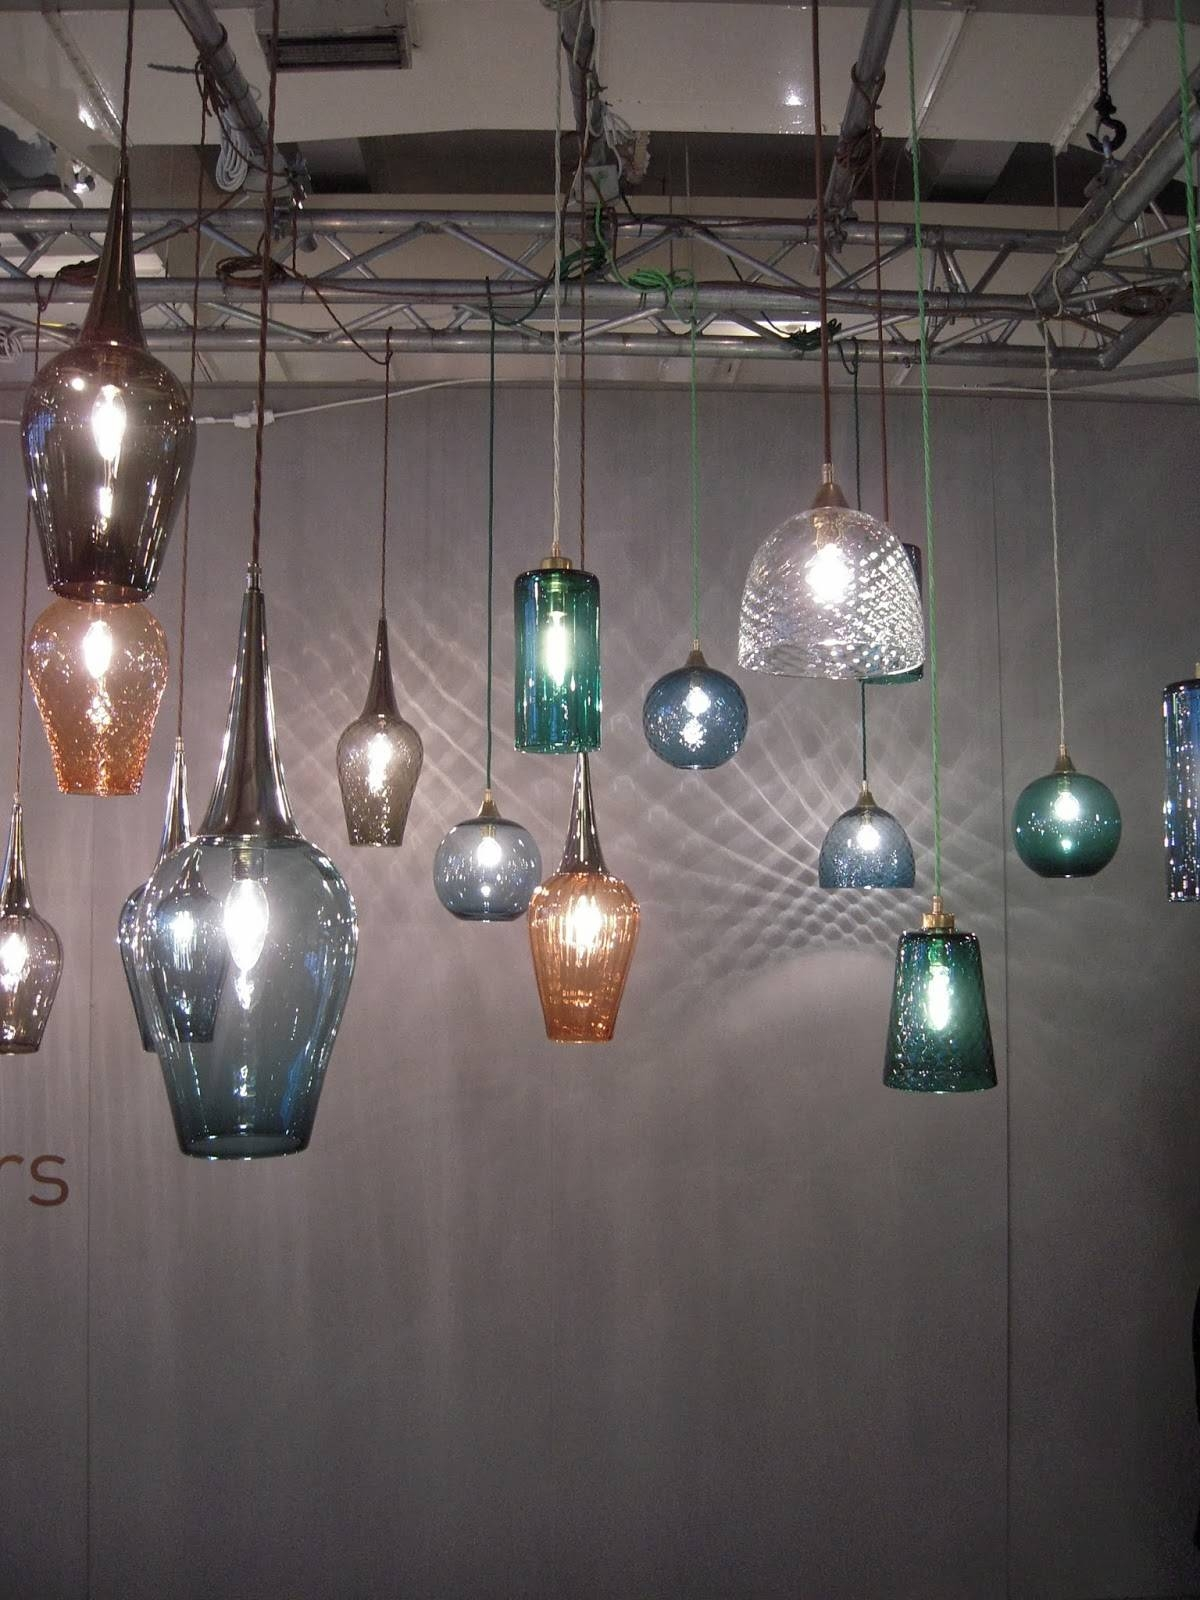 Lighting Design : Adorable Hand Blown Glass Shades For Pendant with regard to Hand Blown Glass Pendants (Image 15 of 15)